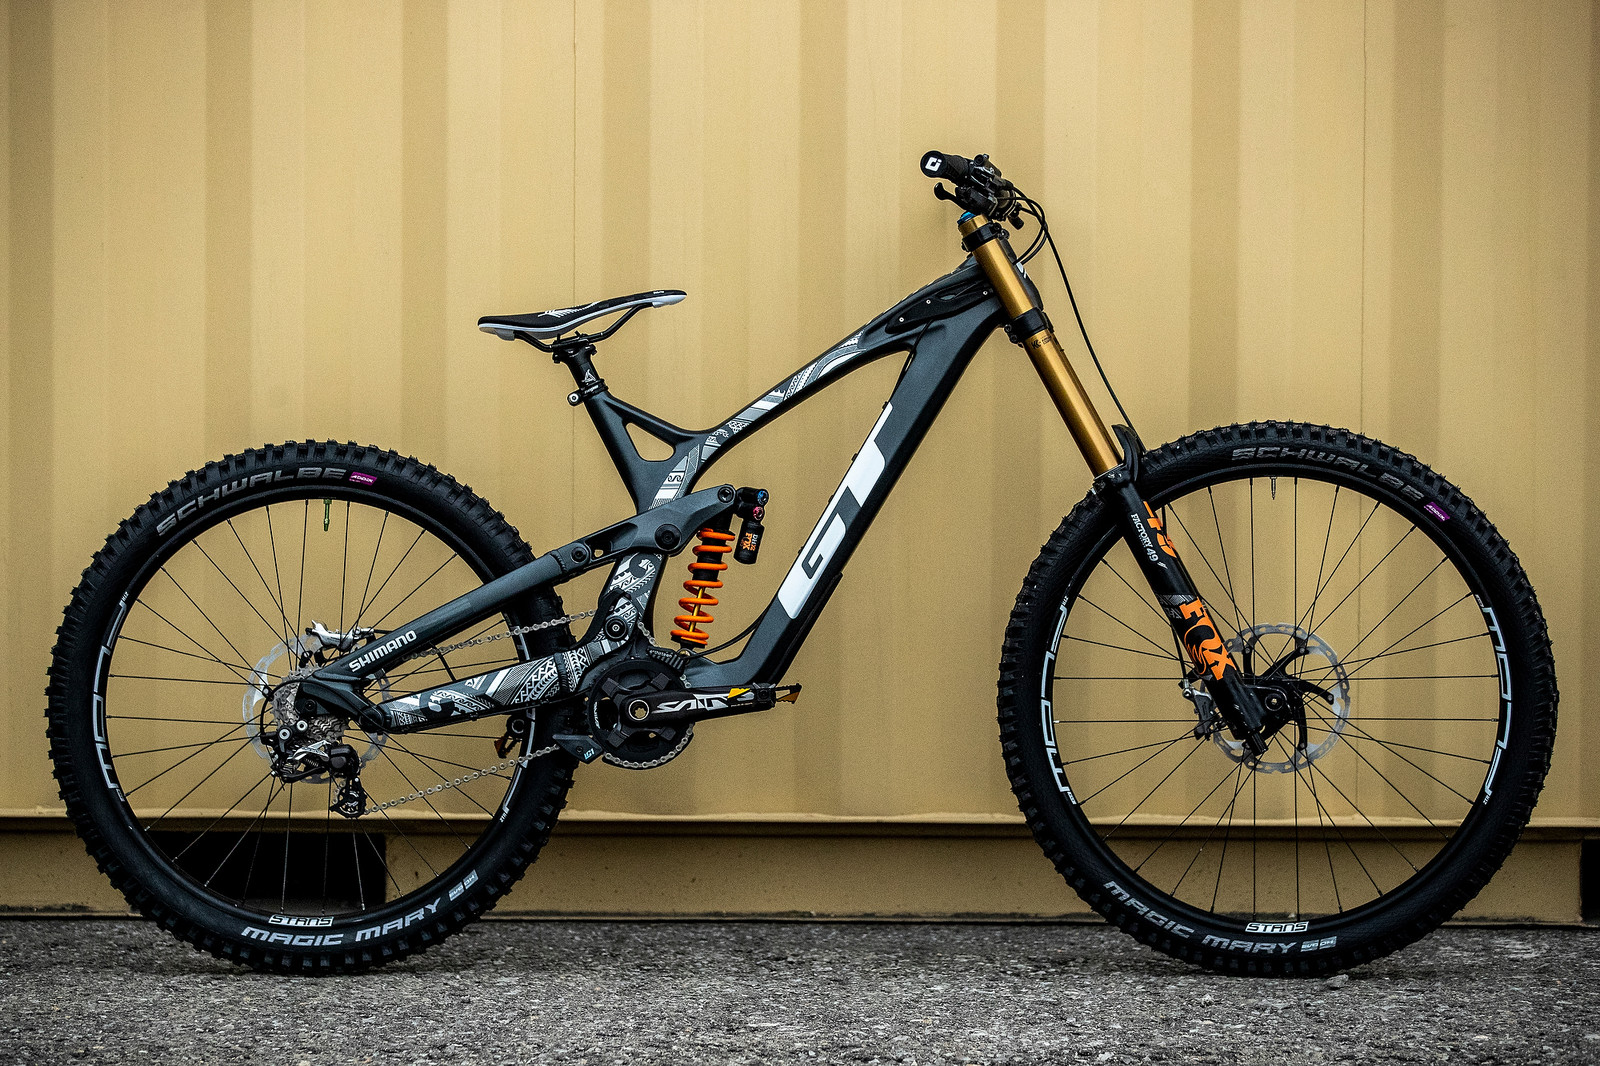 George Brannigan's GT Fury For World Championships - GT Bicycles World Championships DH Race Bikes - Mountain Biking Pictures - Vital MTB